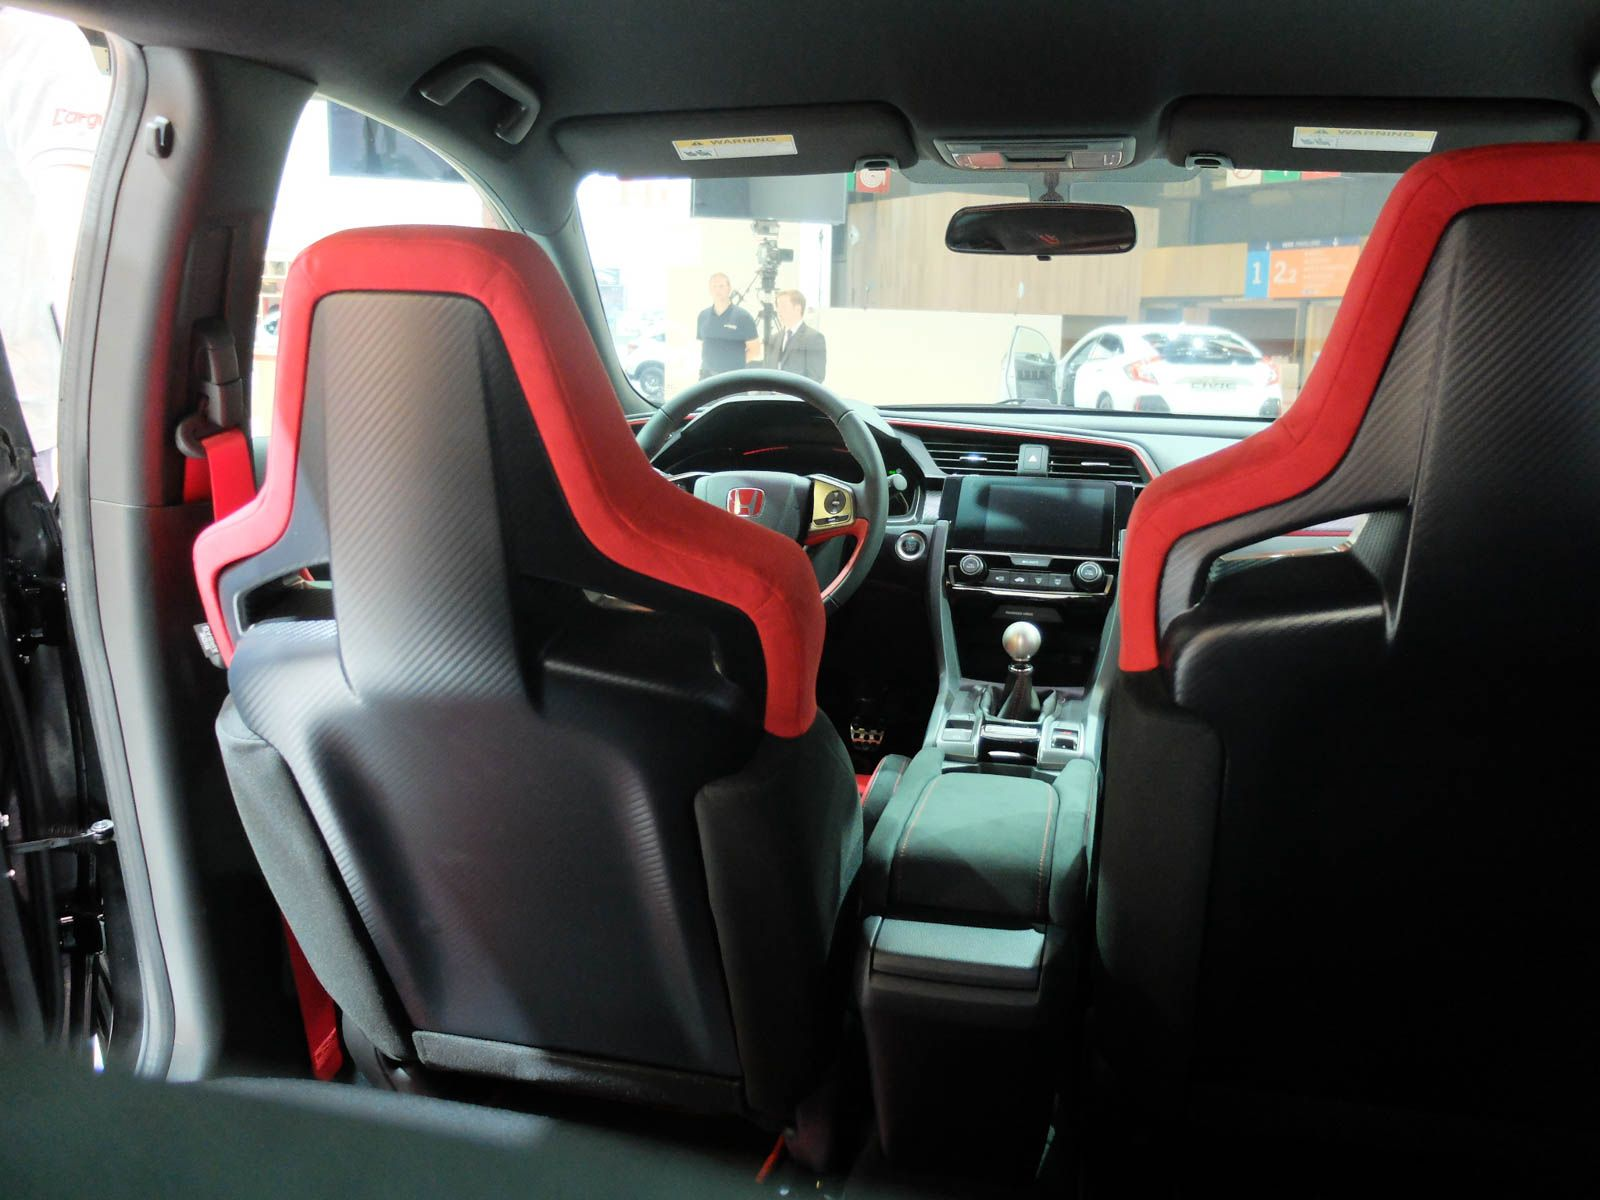 Interior Look 2018 Civic Type R Prototype 2016 Honda Can T Wait To See On The Road We Have Special For New Pm Me